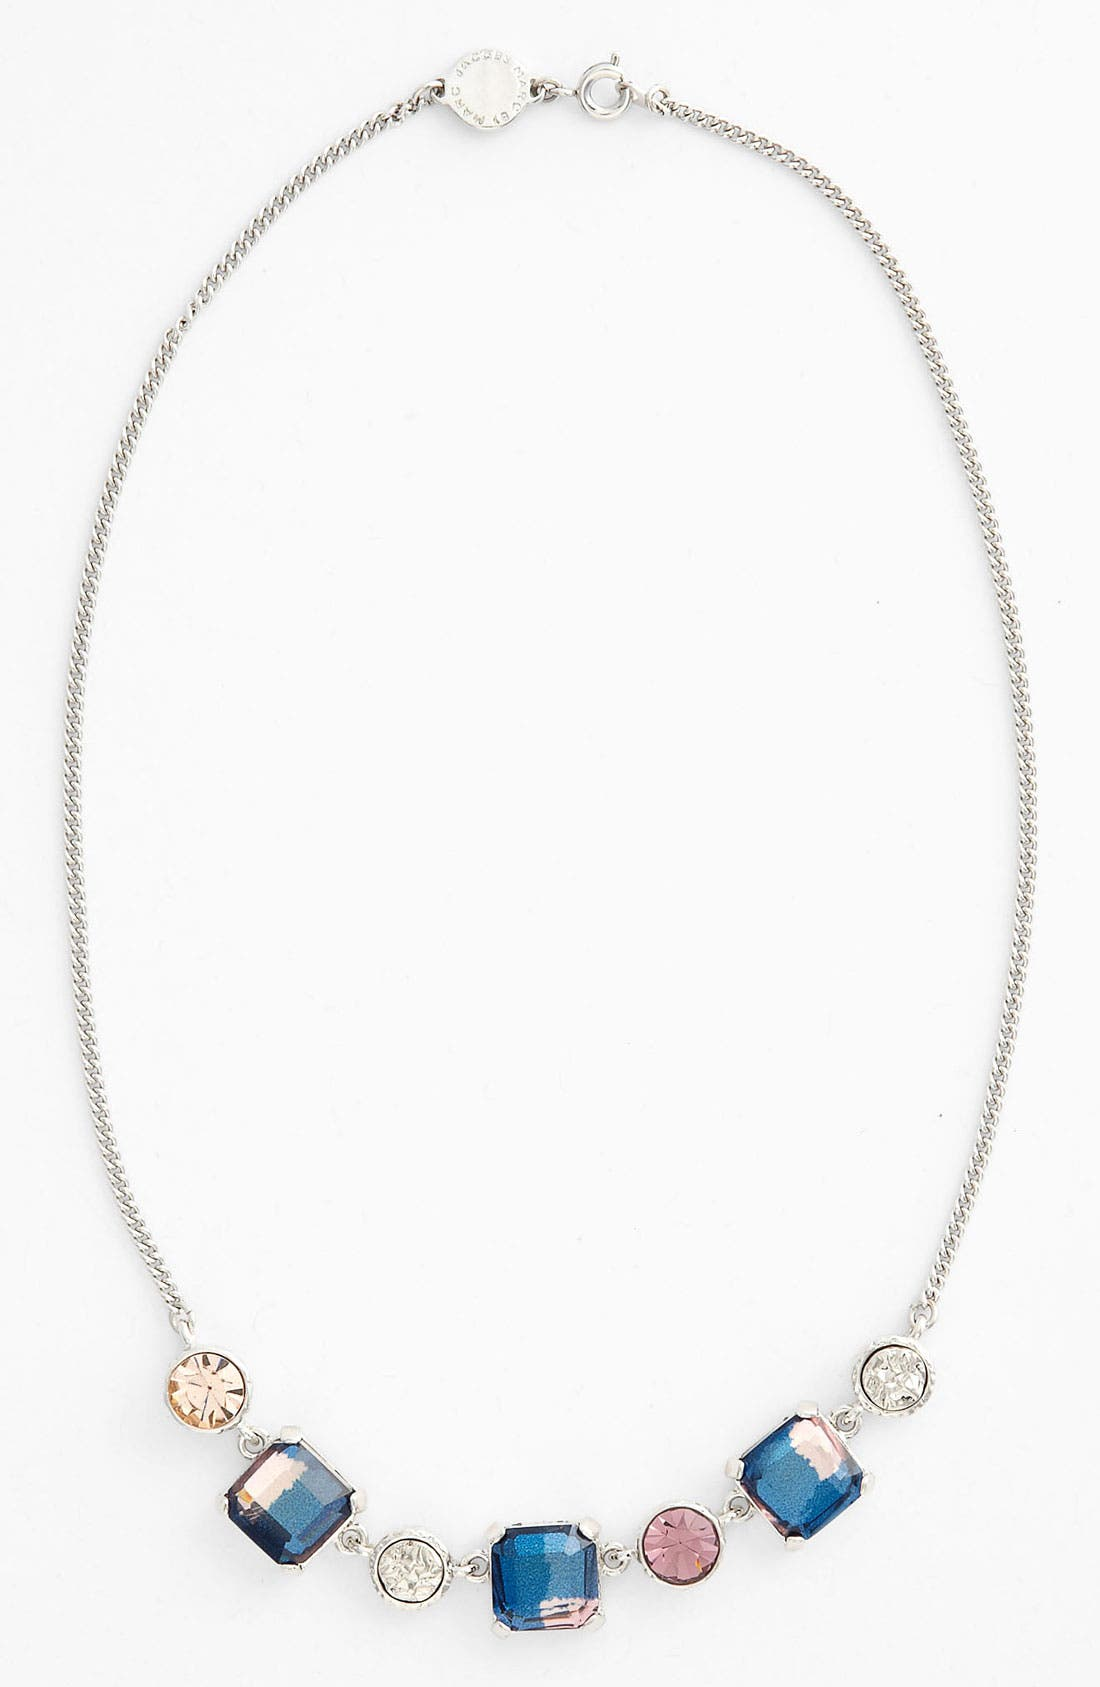 Main Image - MARC BY MARC JACOBS 'Paste & Prints' Frontal Necklace